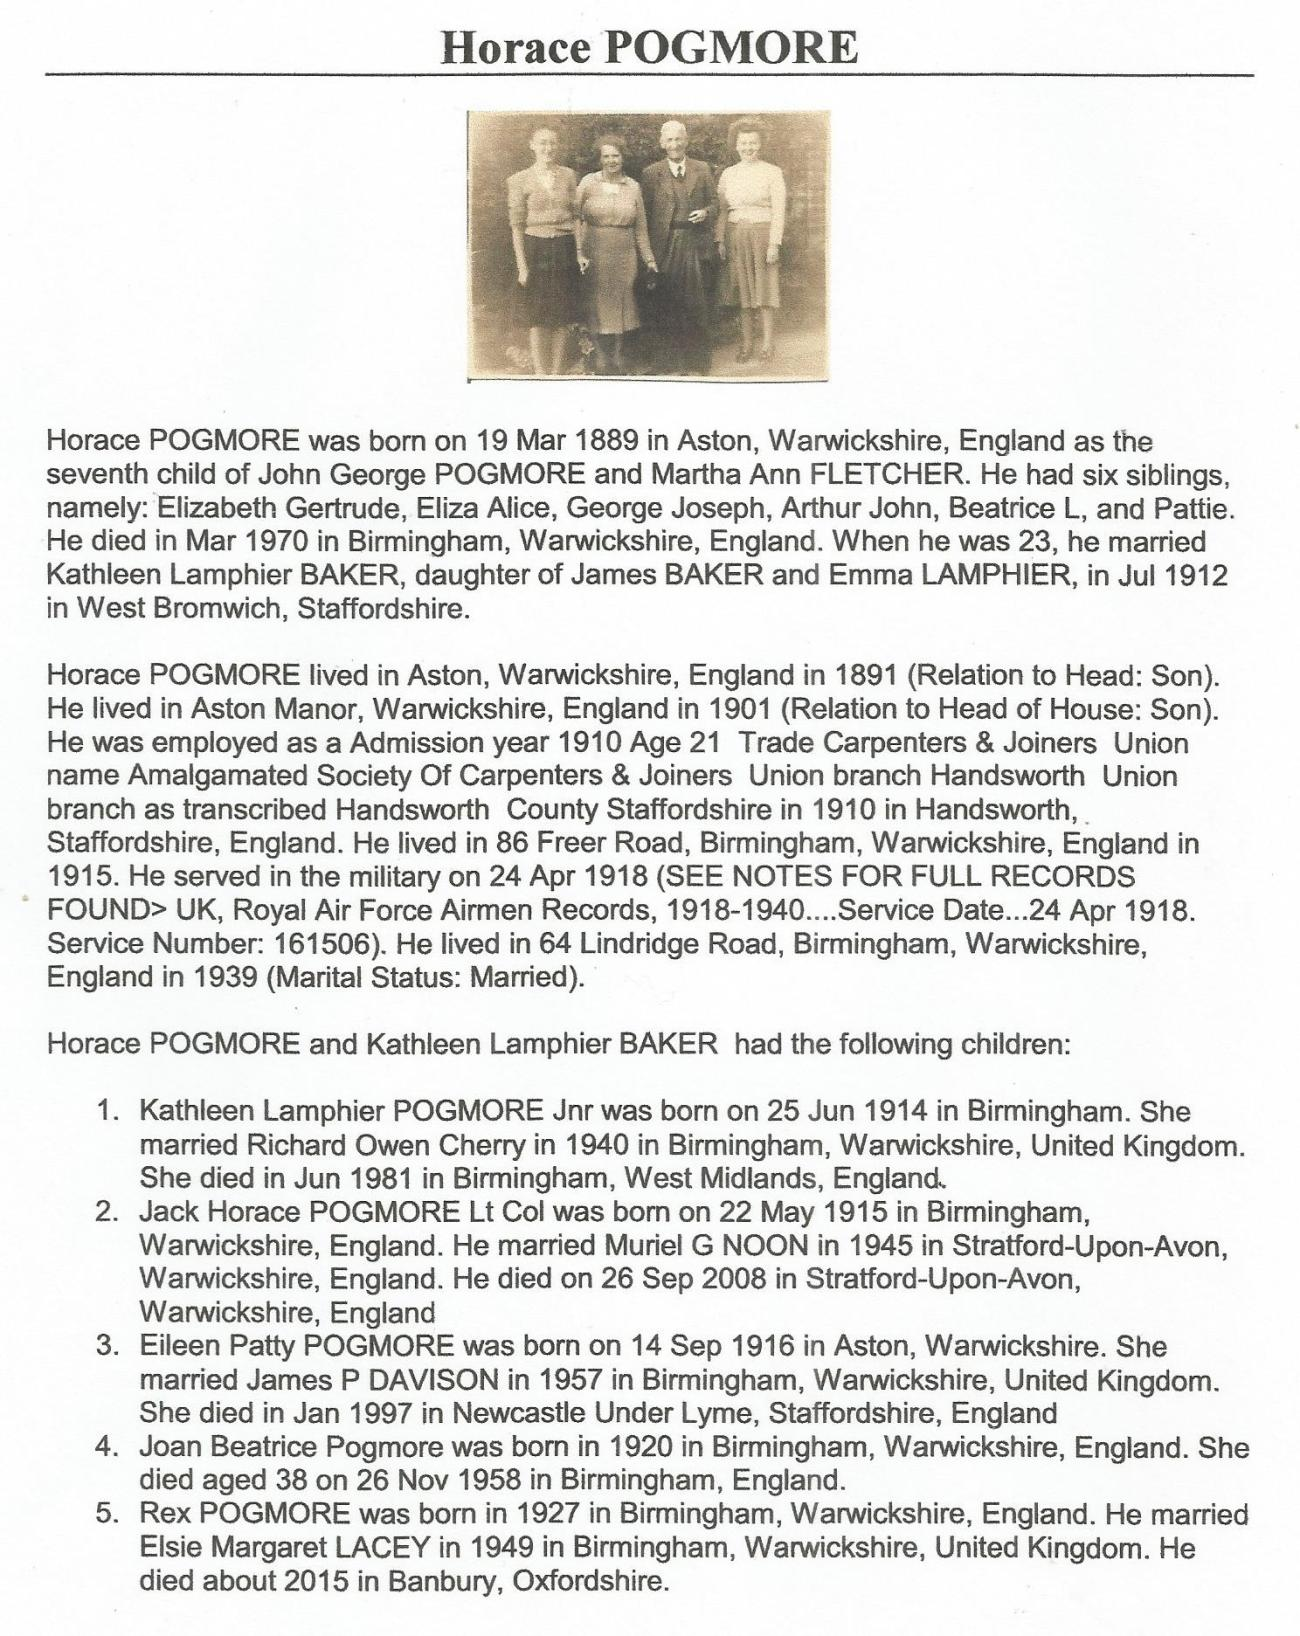 Horace family info